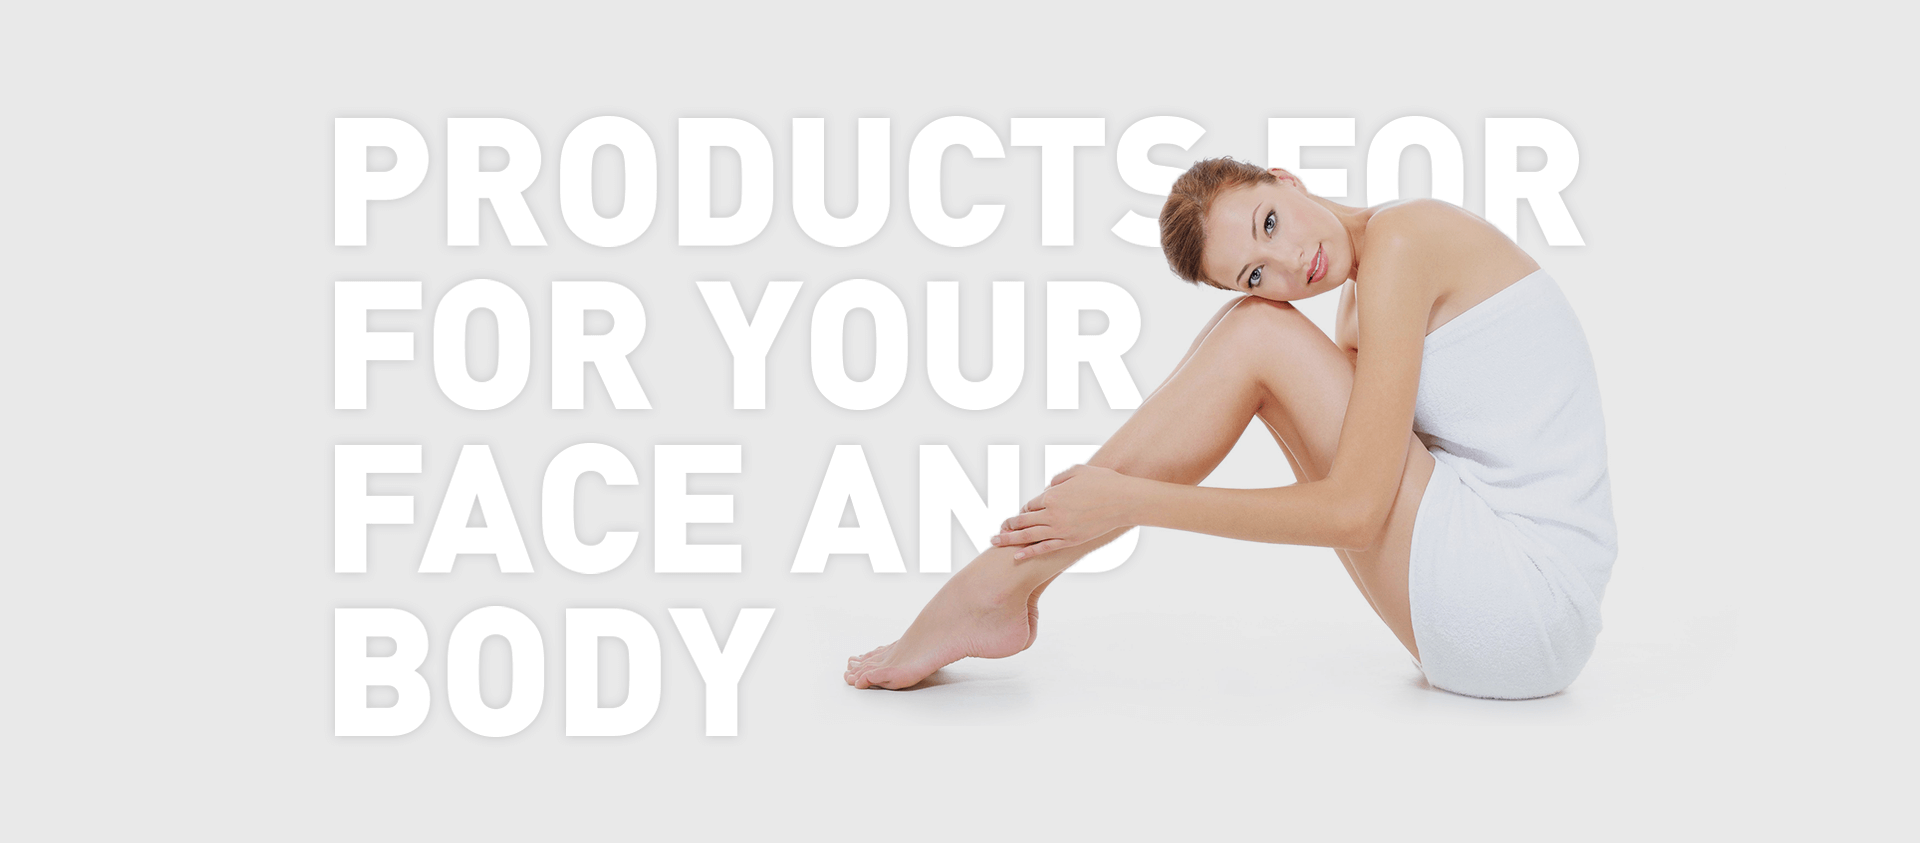 face and body quality products